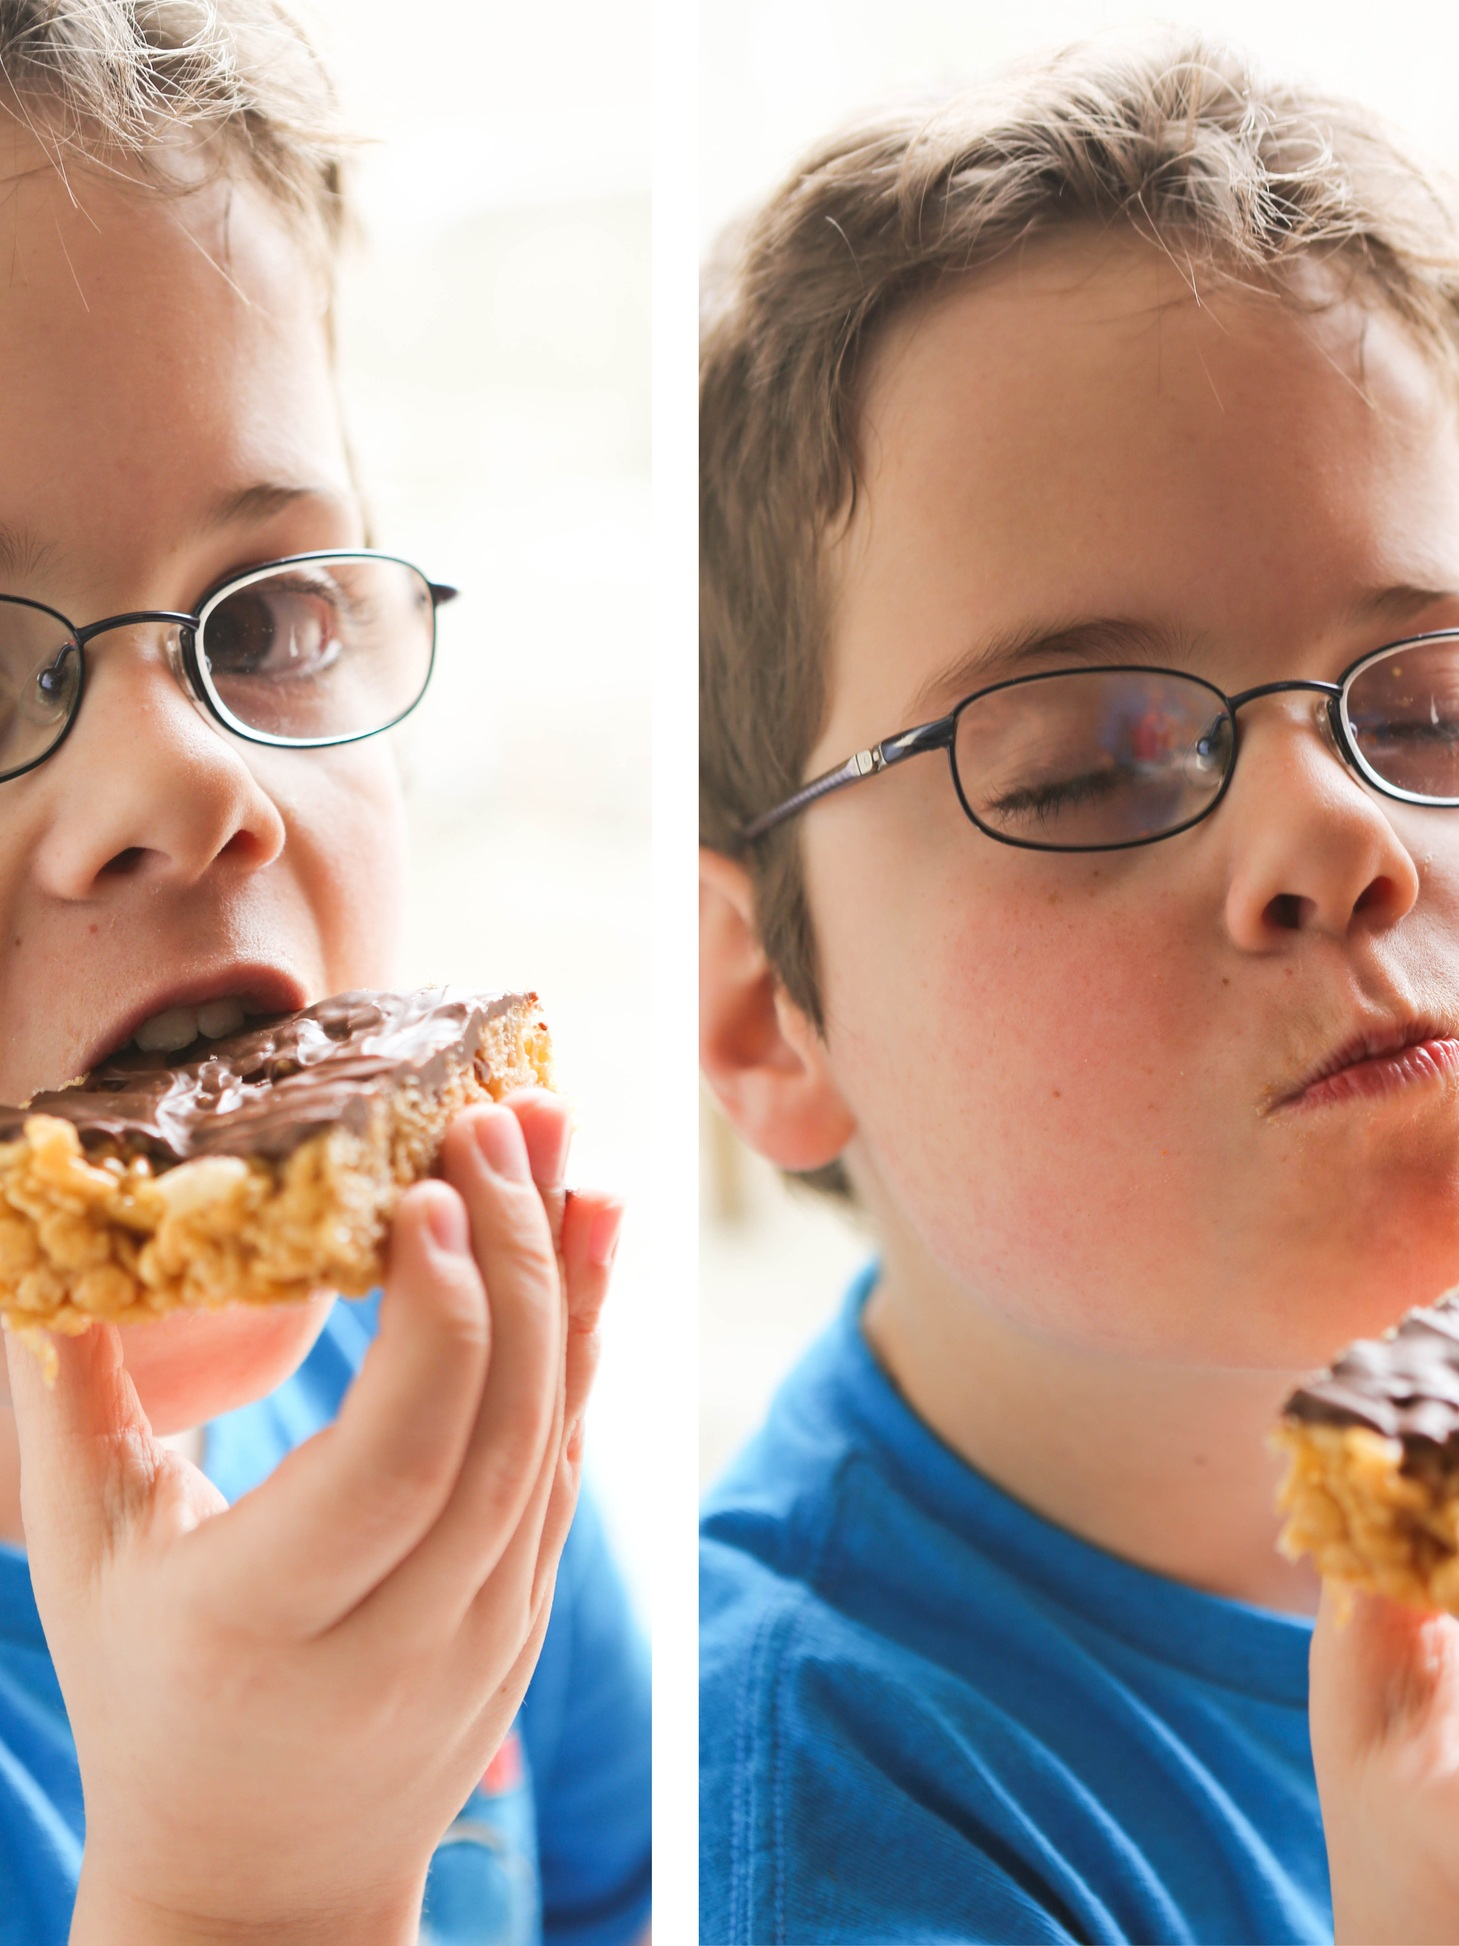 cute boy with glasses biting into a rice krispies treat